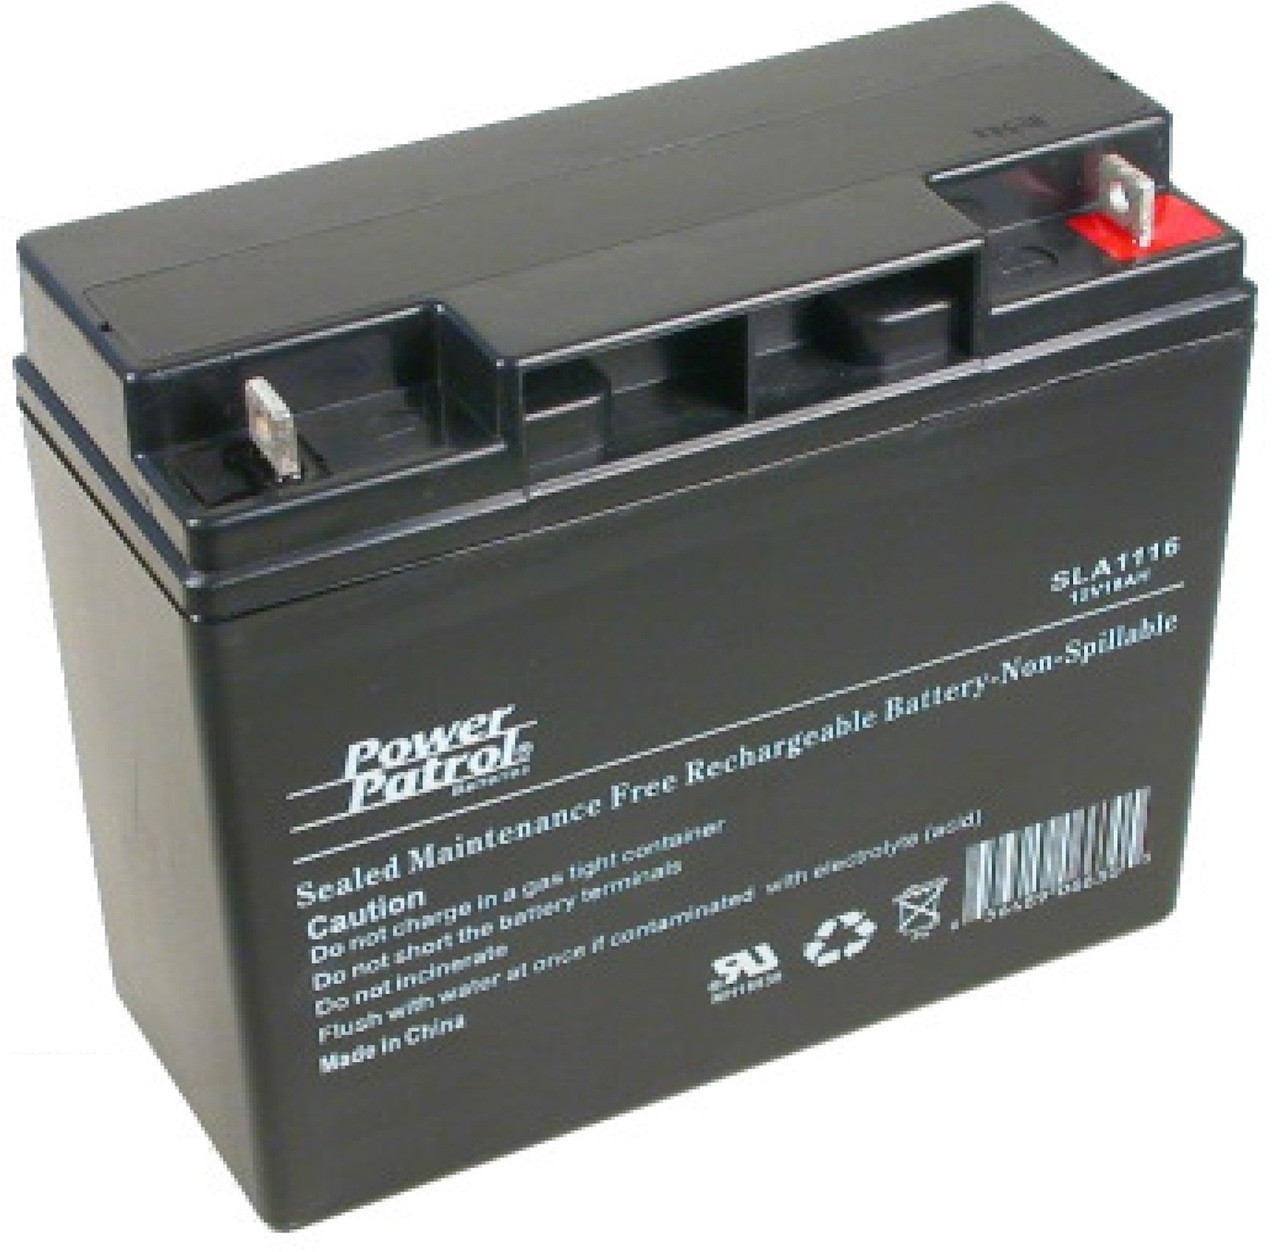 Interstate Batteries Sla1161 12v 44ah Deep Cycle Agm Battery - 12v Batterie